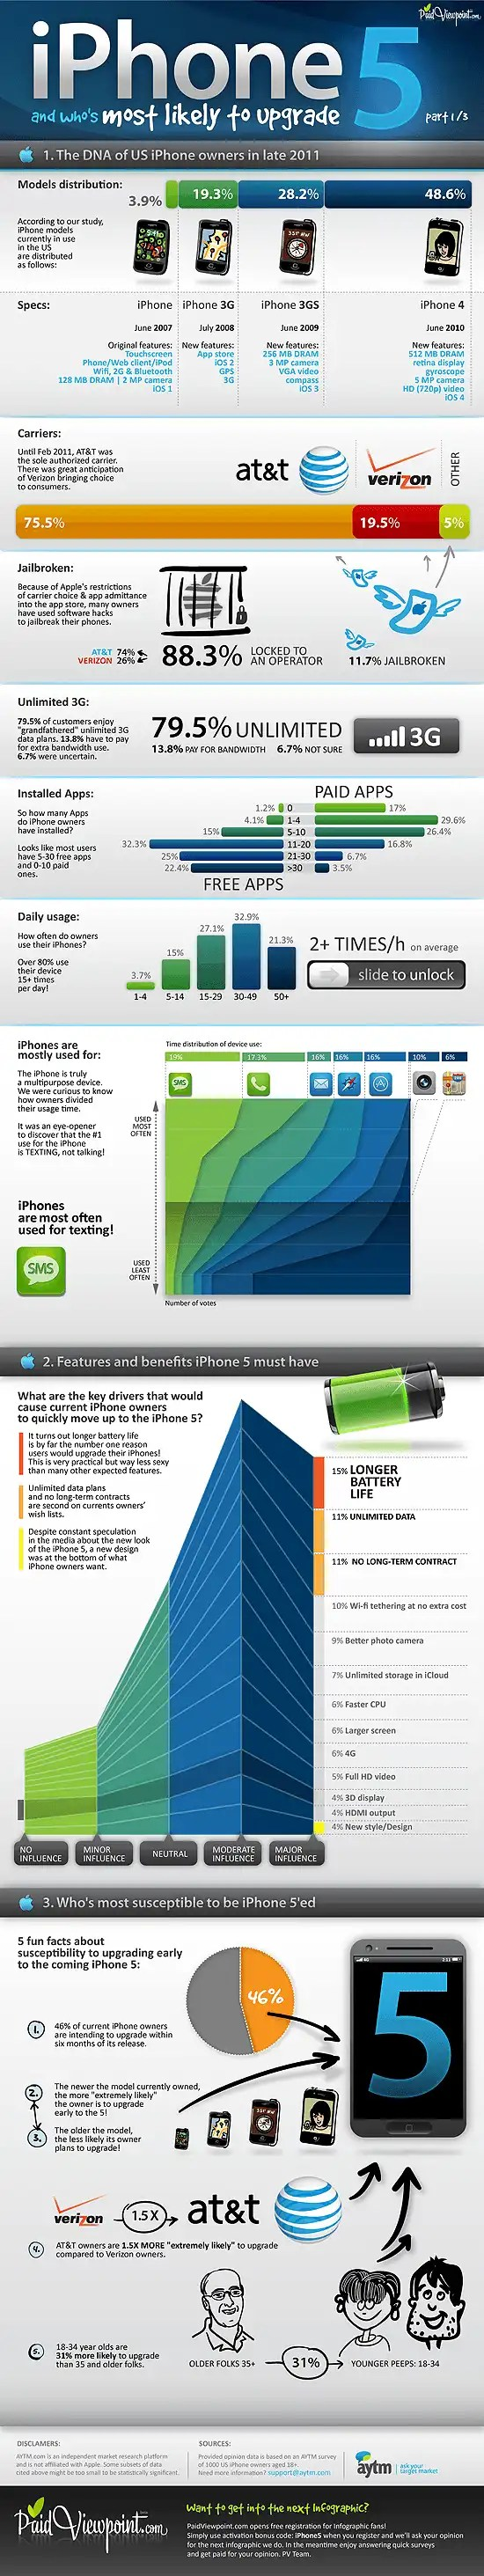 Apple iPhone 5 infographic